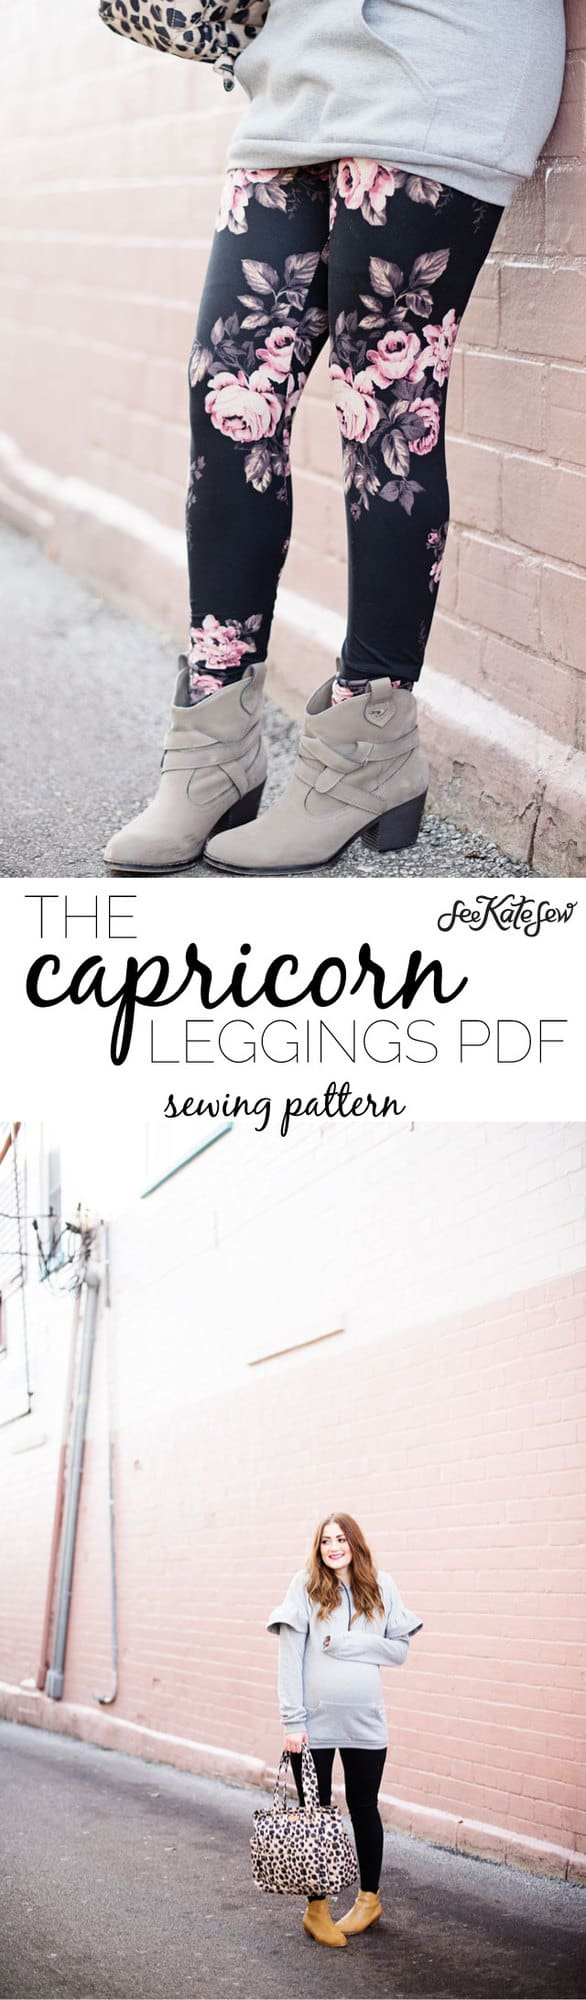 the CAPRICORN LEGGINGS PDF | DIY Workout Pants Sewing Pattern | new pattern! The CAPRICORN leggings! + RELEASE DAY SALE | handmade leggings | diy legging tutorial | easy diy leggings | diy activewear | handmade activewear | sewing patterns | diy leggings pattern || see Kate sew #leggingspattern #diyleggings #handmadeclothing